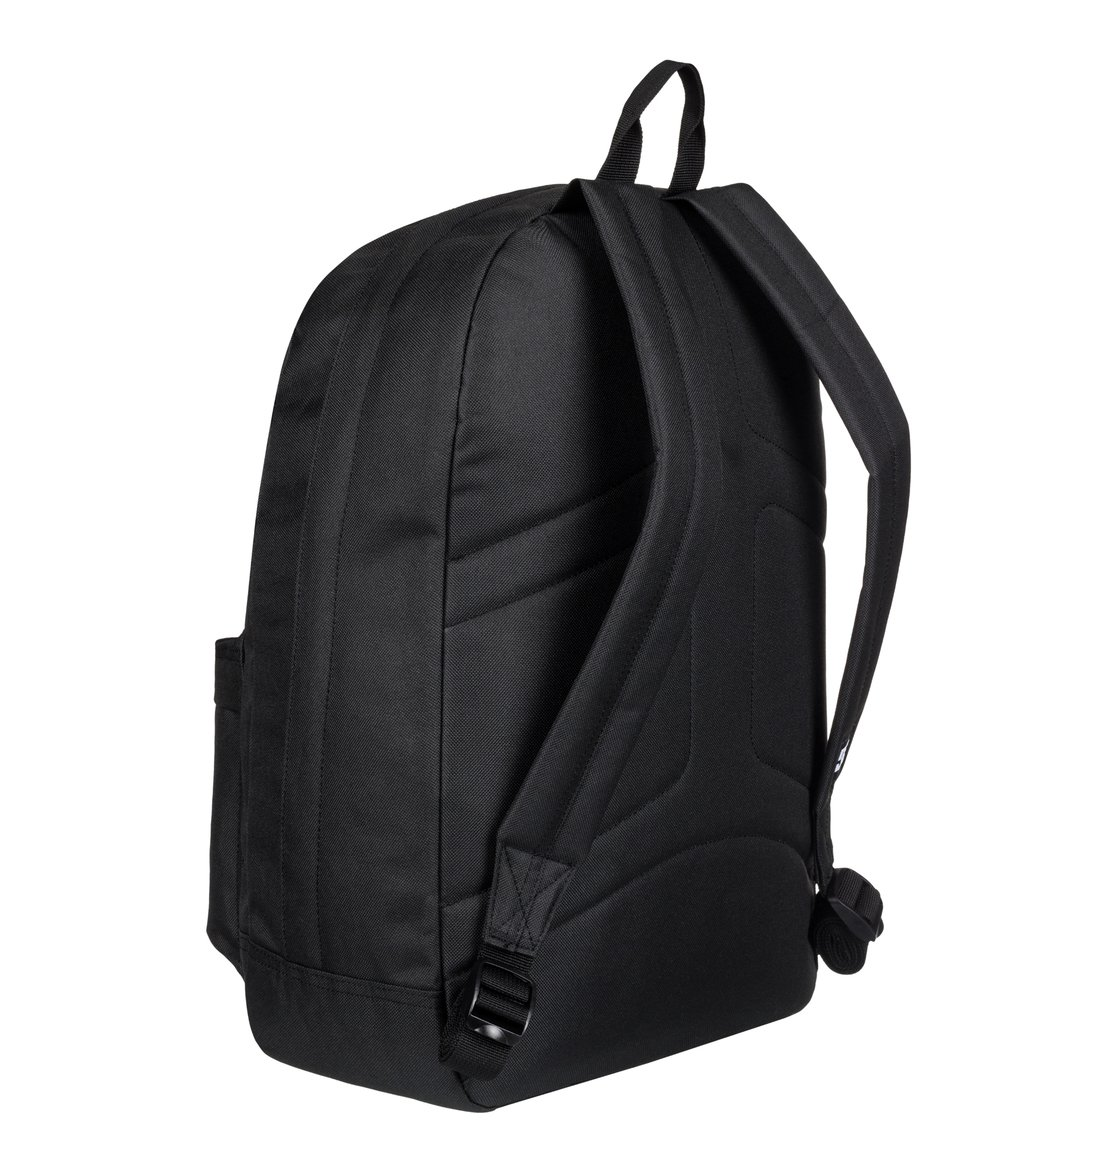 DC-Shoes-Backstack-18-5L-Sac-a-dos-taille-moyenne-pour-Homme-EDYBP03180 miniature 10